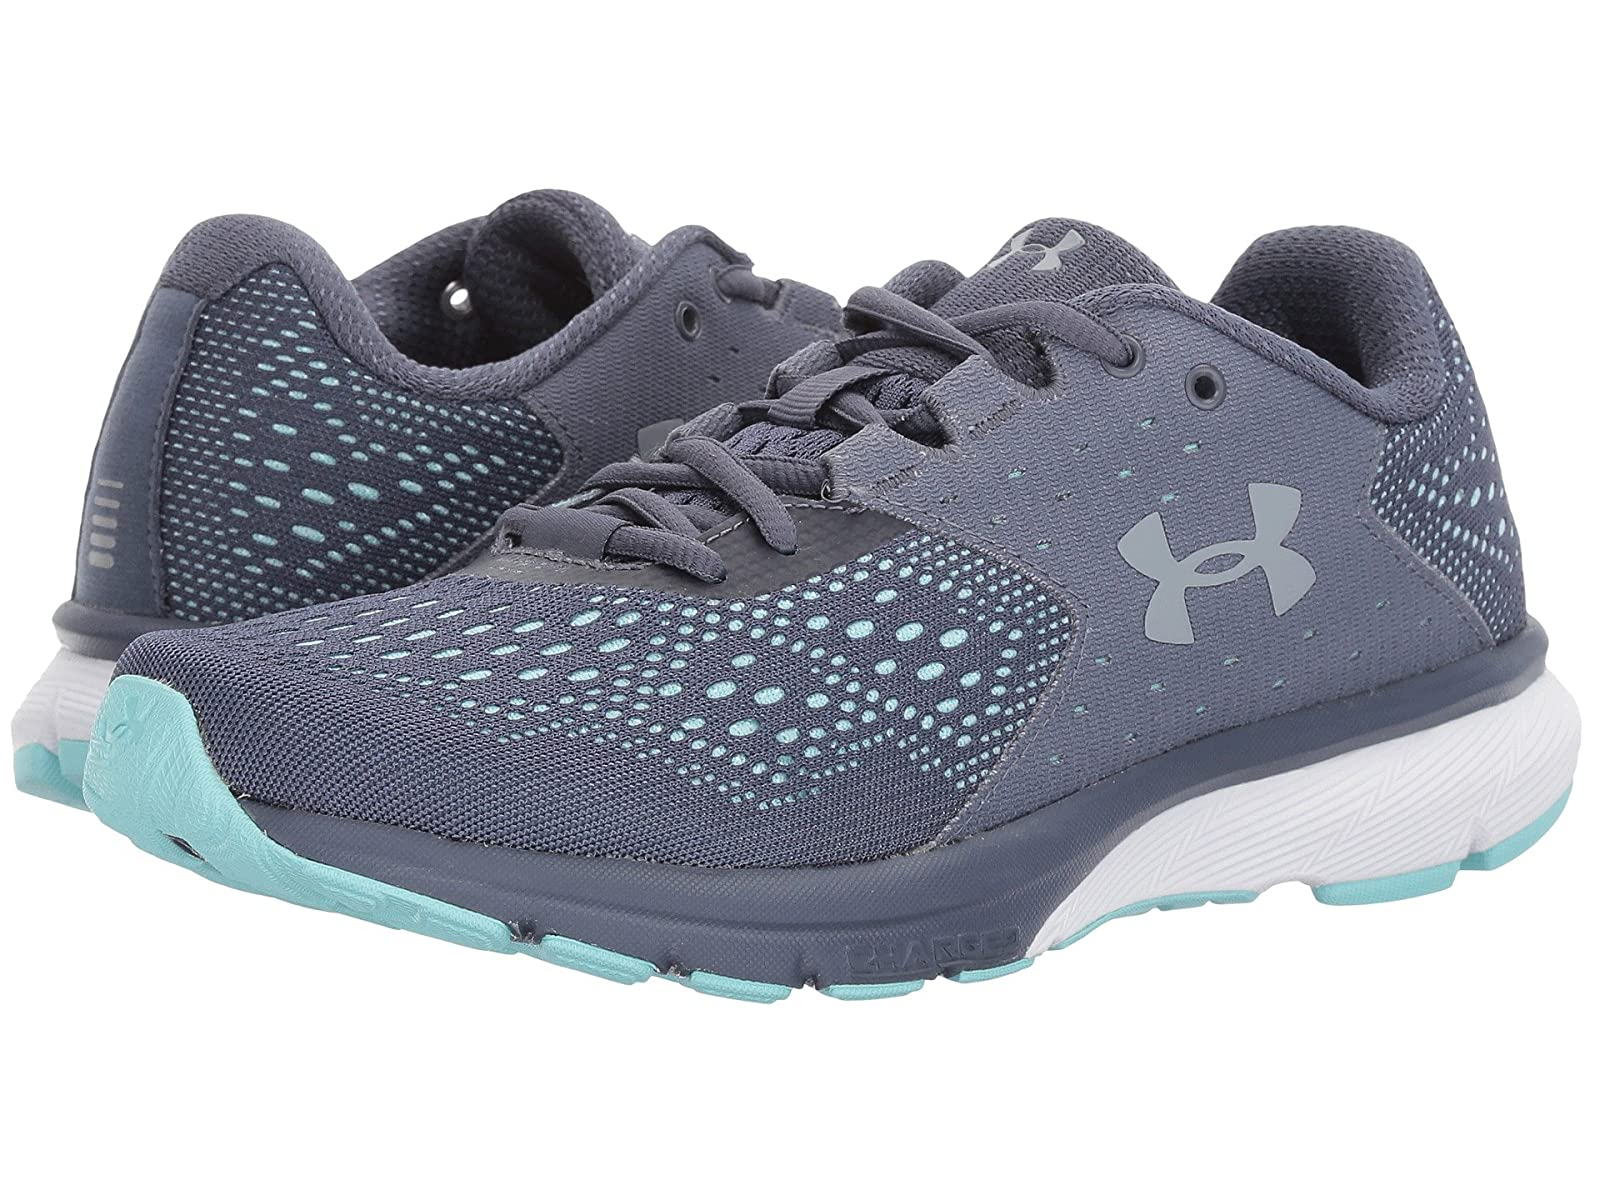 Under Armour Charged RebelAtmospheric grades have affordable shoes